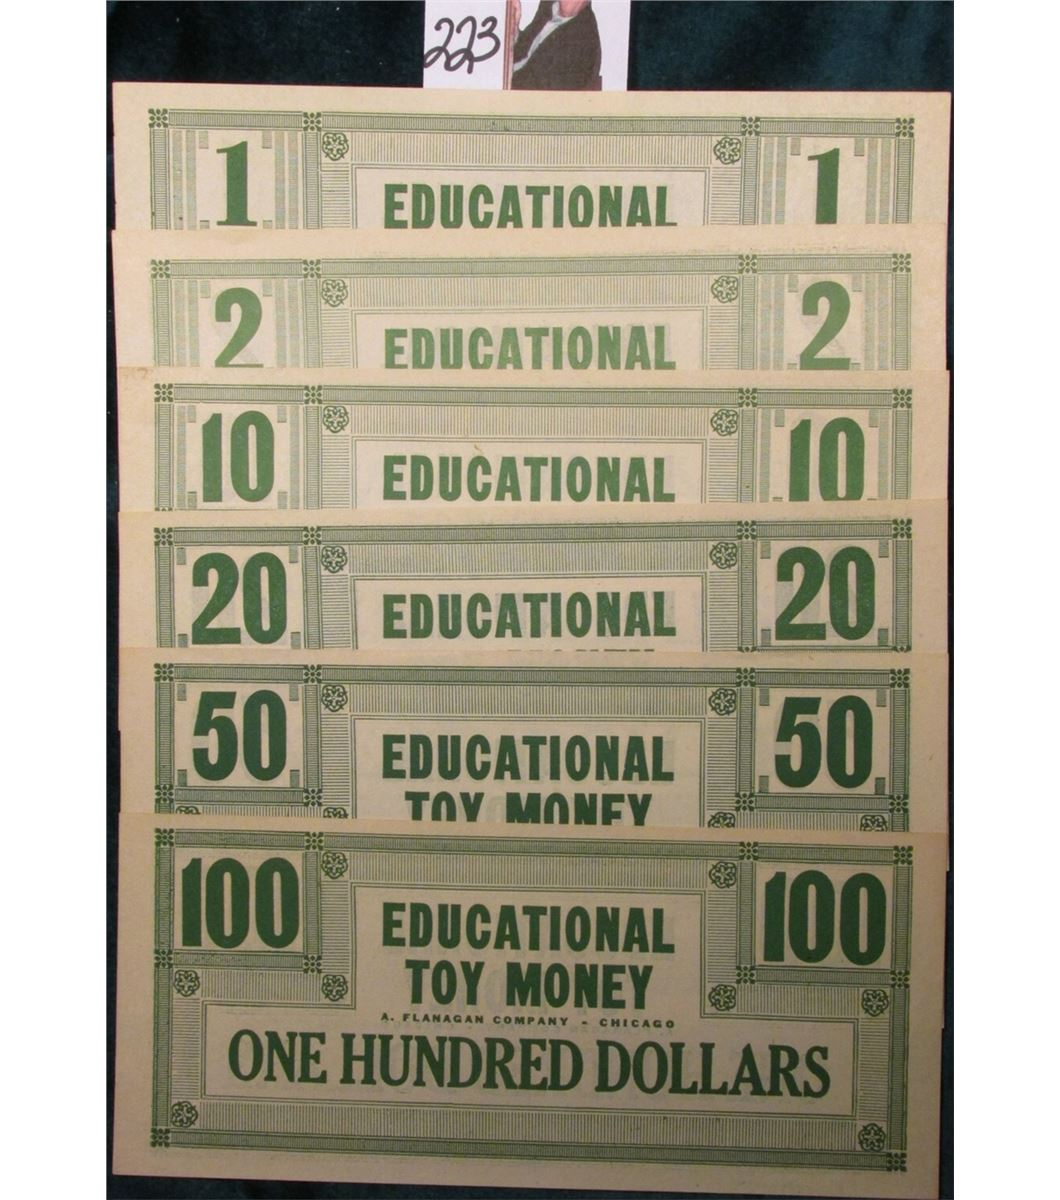 Toy Money 100 : Educational toy money a flanagan company chicago